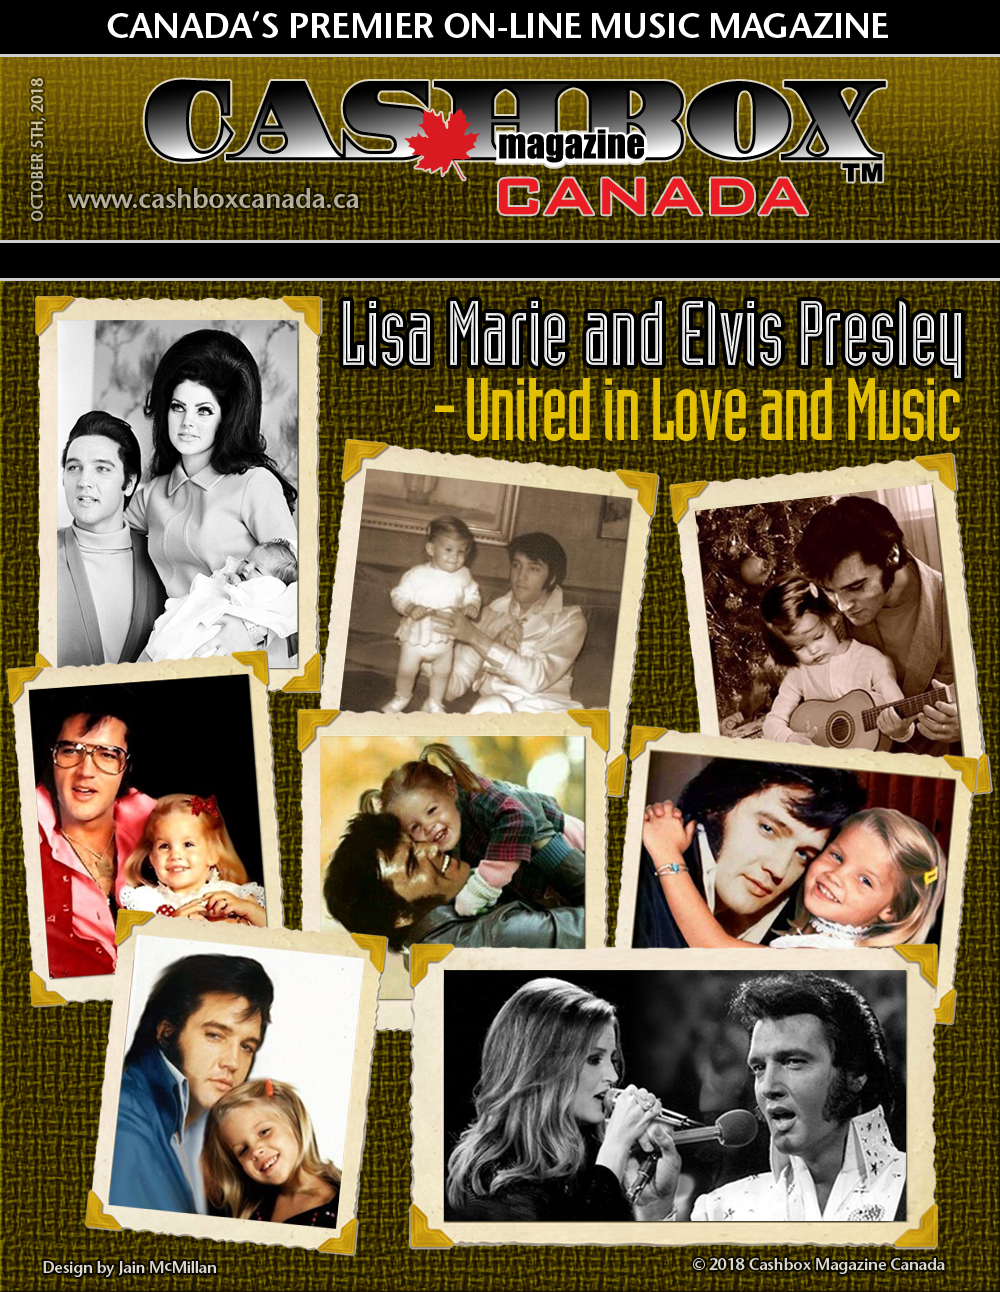 Lisa Marie and Elvis Presley – United in Love and Music